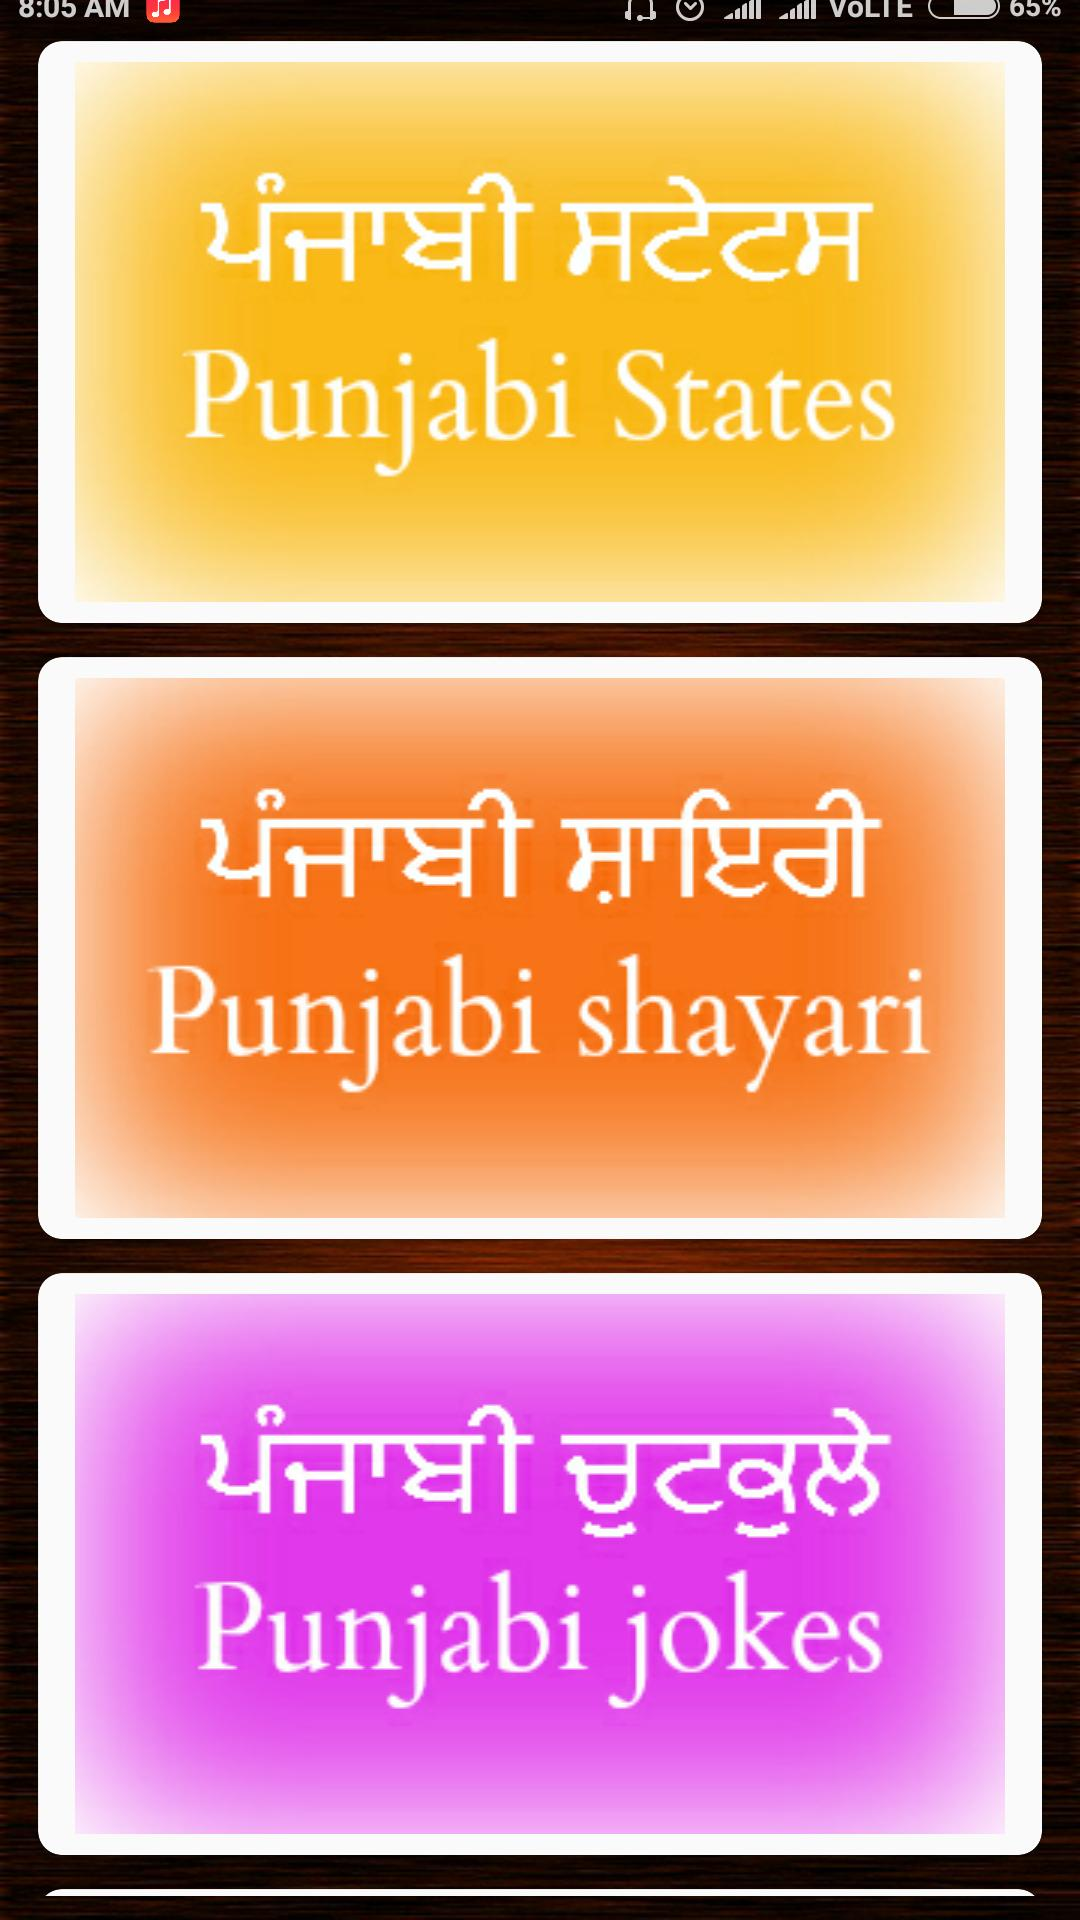 Punjabi status, shayari, jokes for Android - APK Download